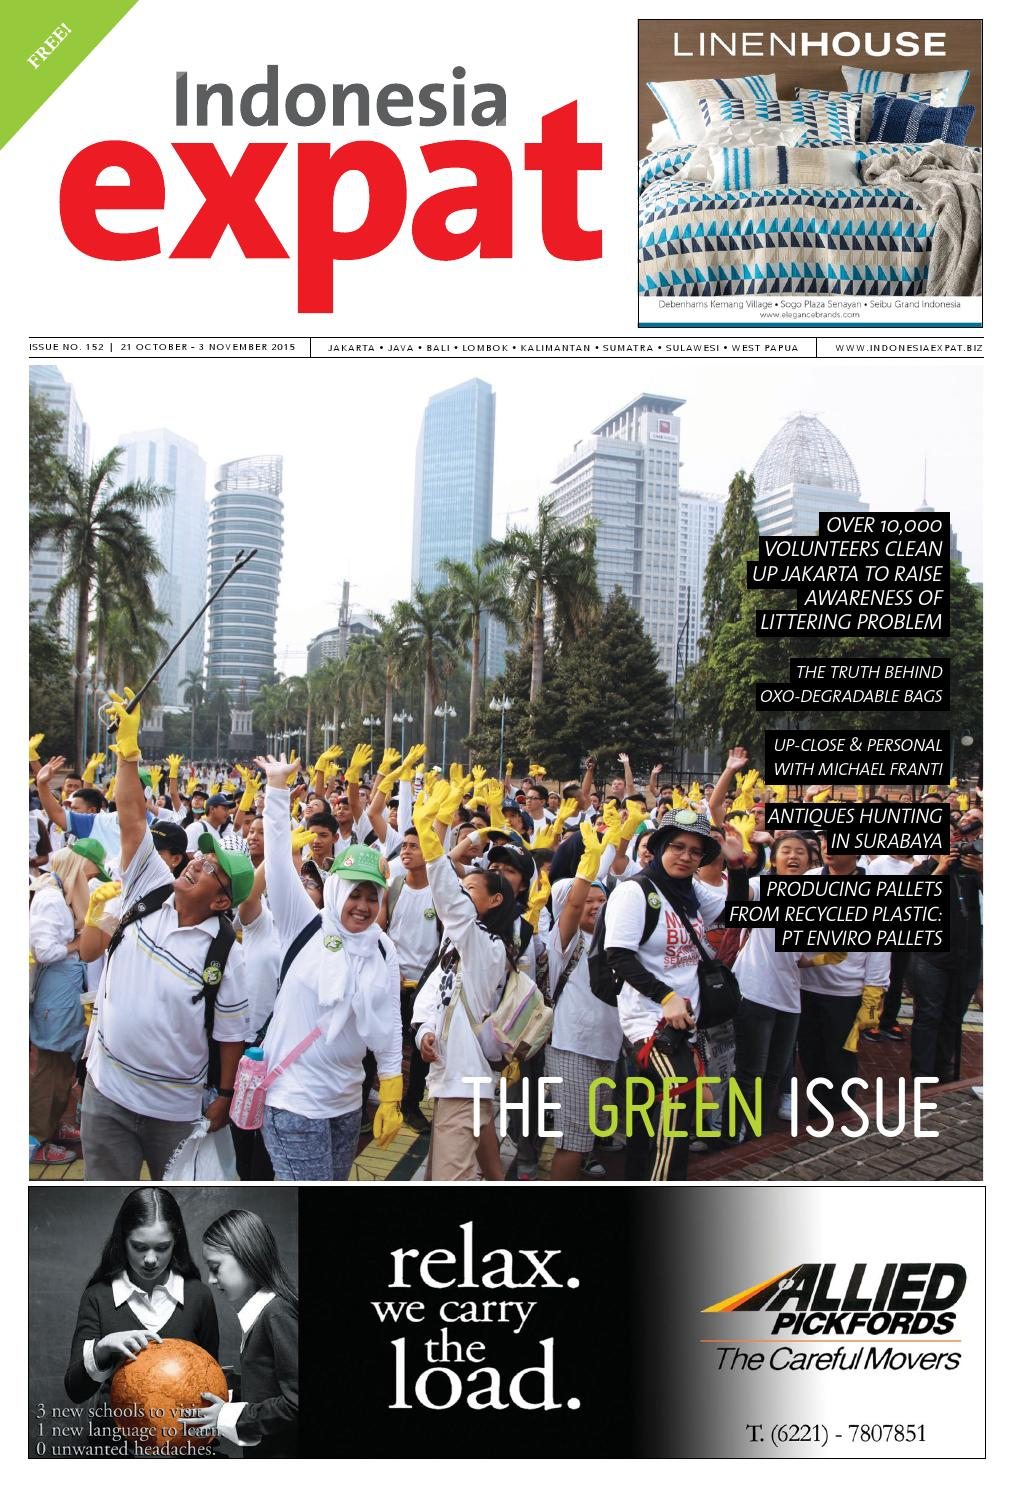 Indonesia Expat - Issue 152 by Indonesia Expat - issuu